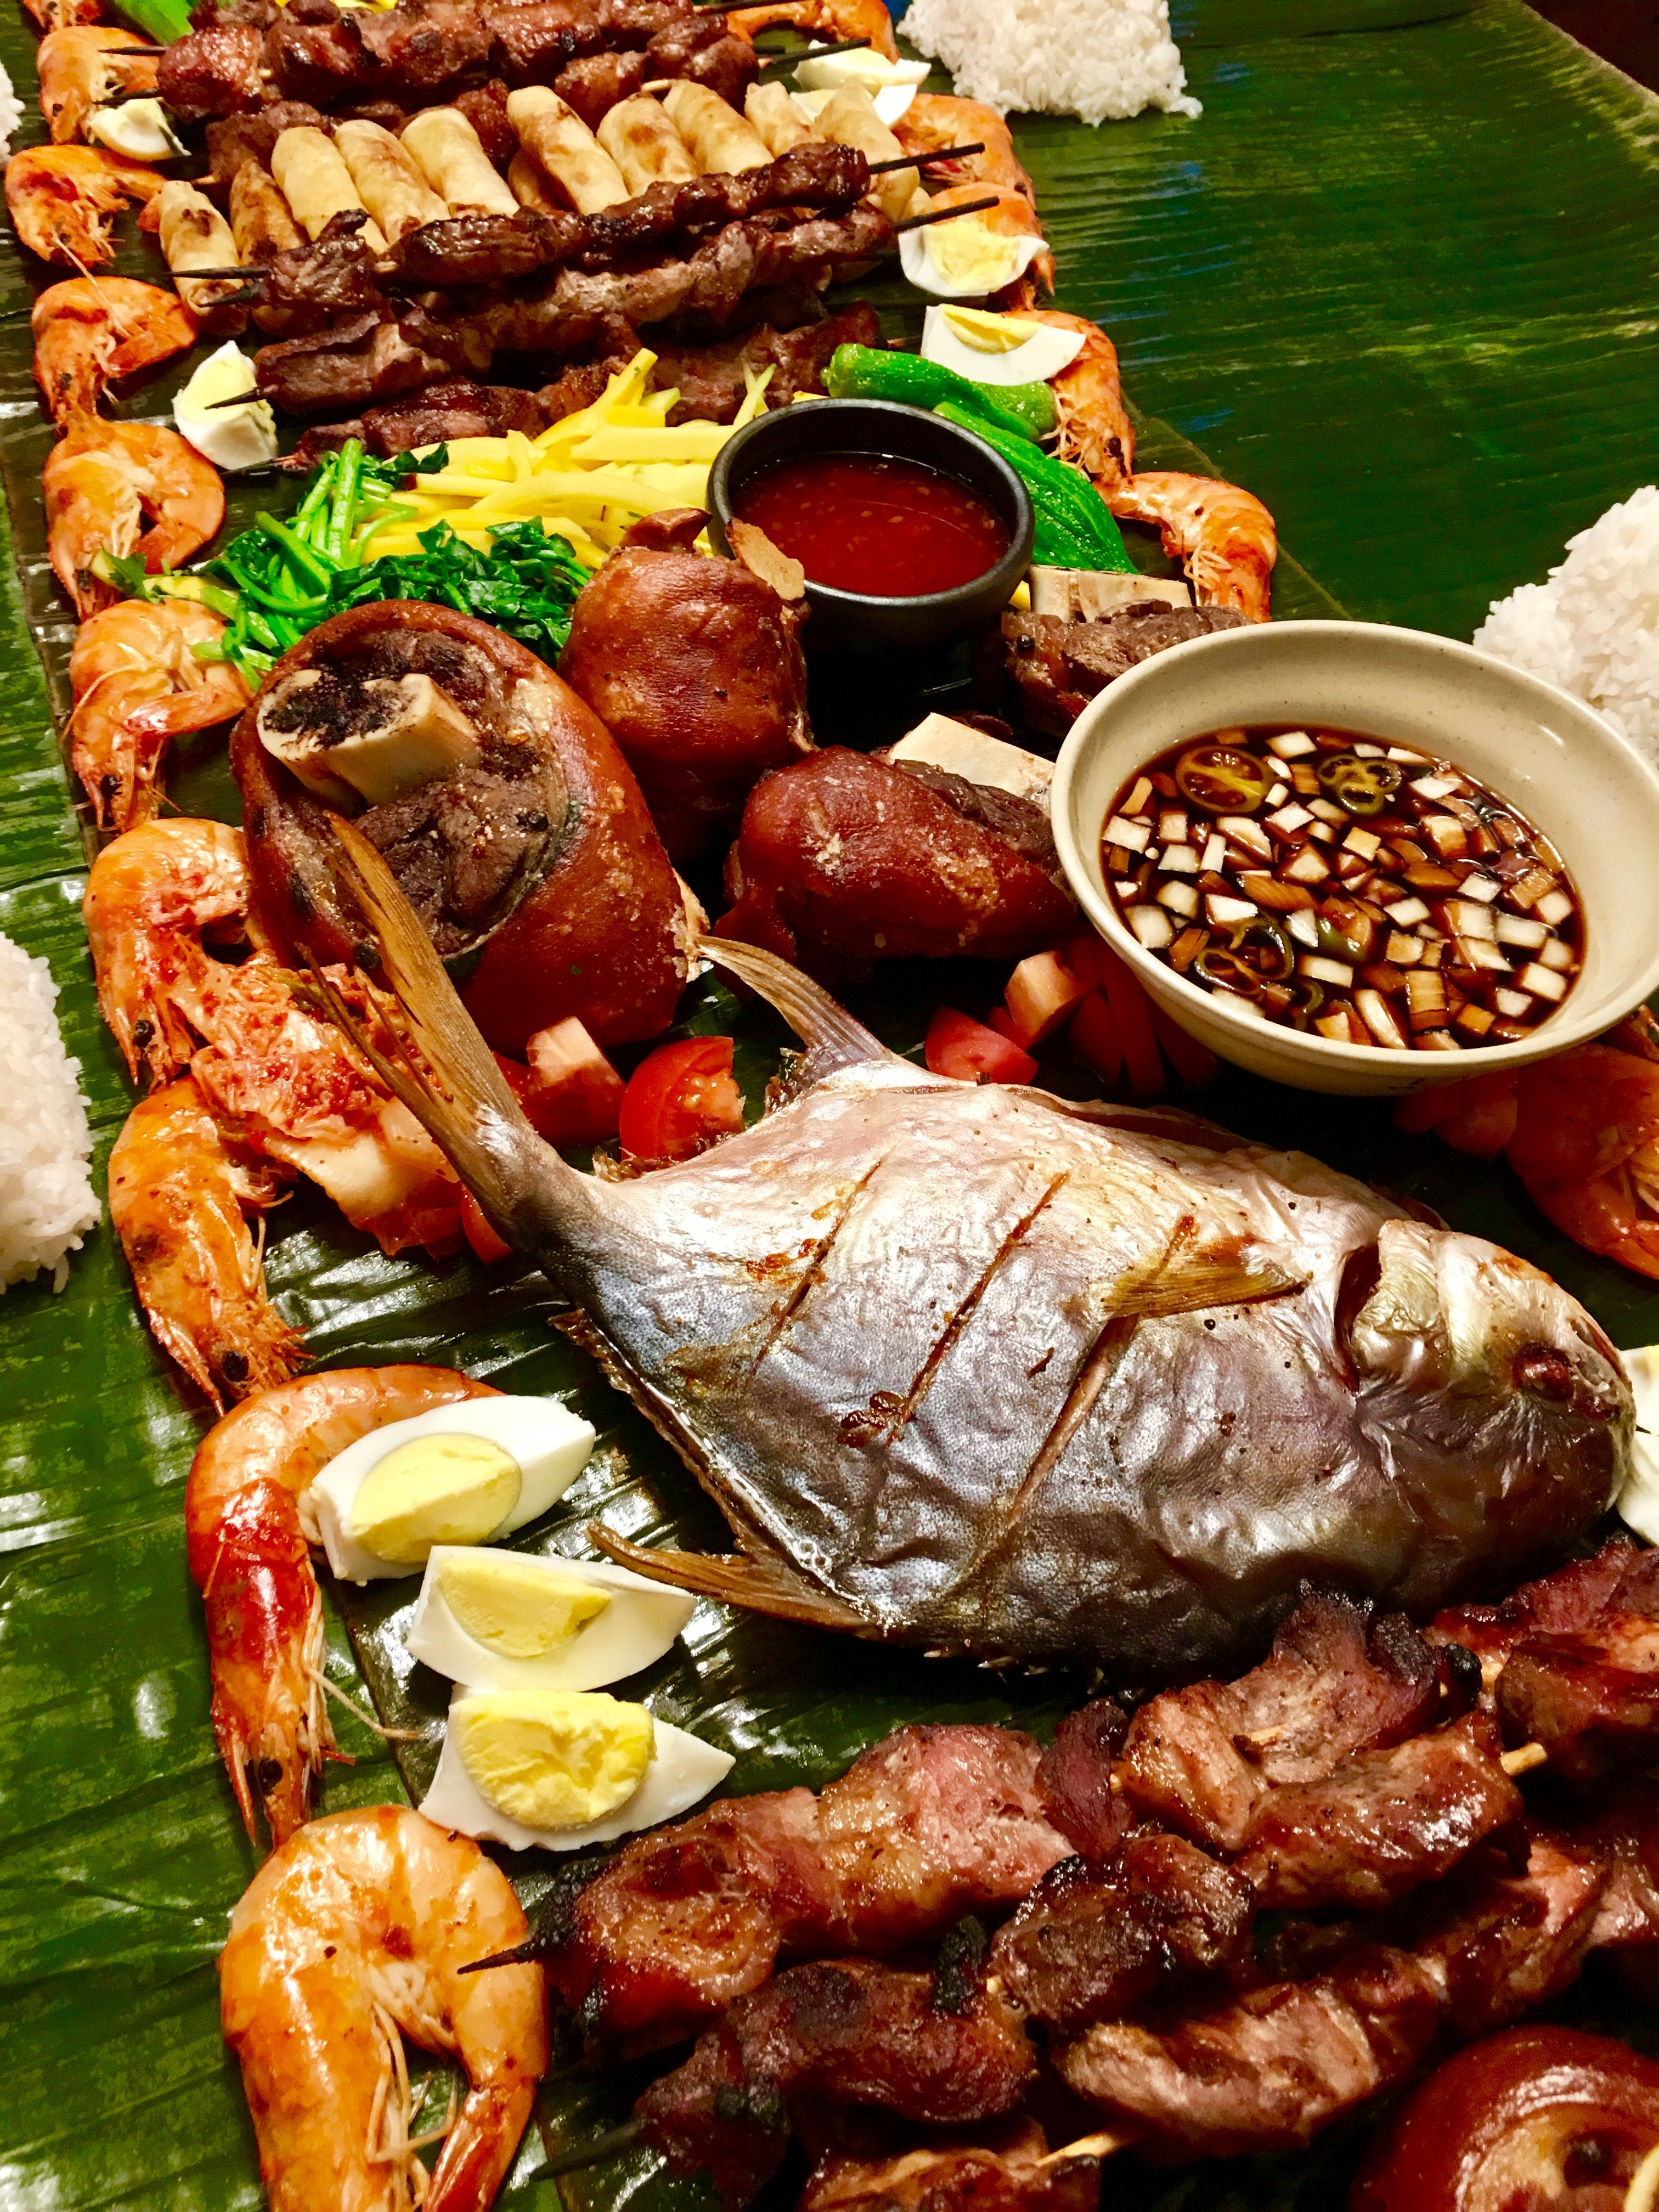 Boodle fight items Food, Boodle fight, Potluck recipes